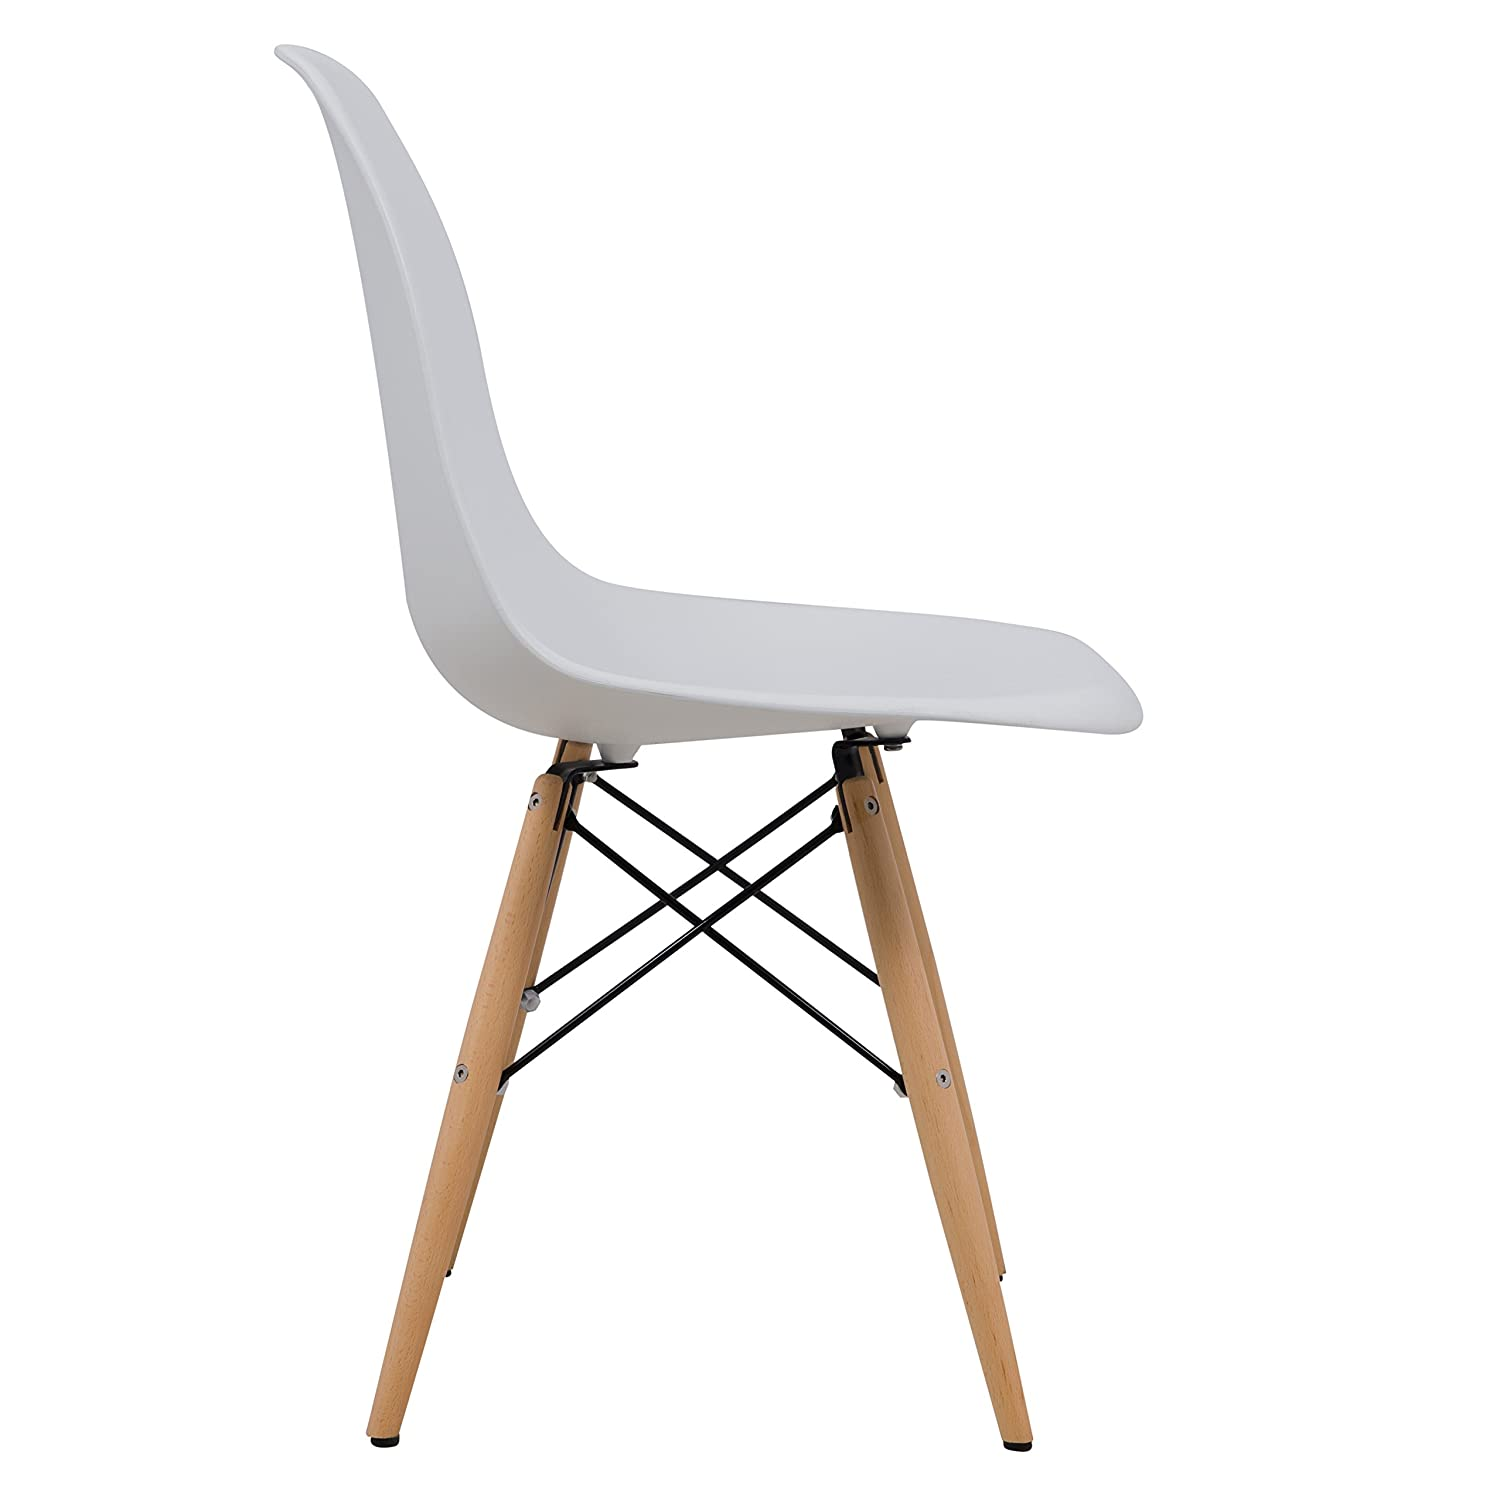 Amazon LeisureMod Calbert Molded Plastic Dining Chair with Wooden Dowel Legs in White Kitchen & Dining